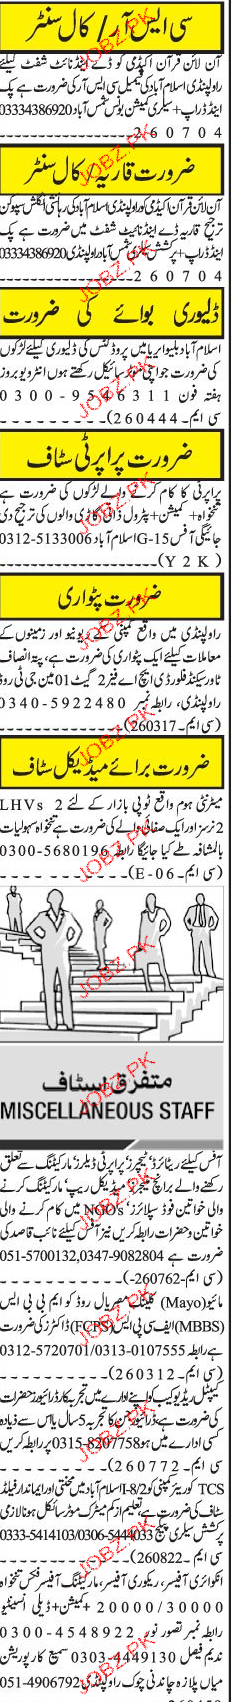 Call Center, Delivery Boys Job Opportunity